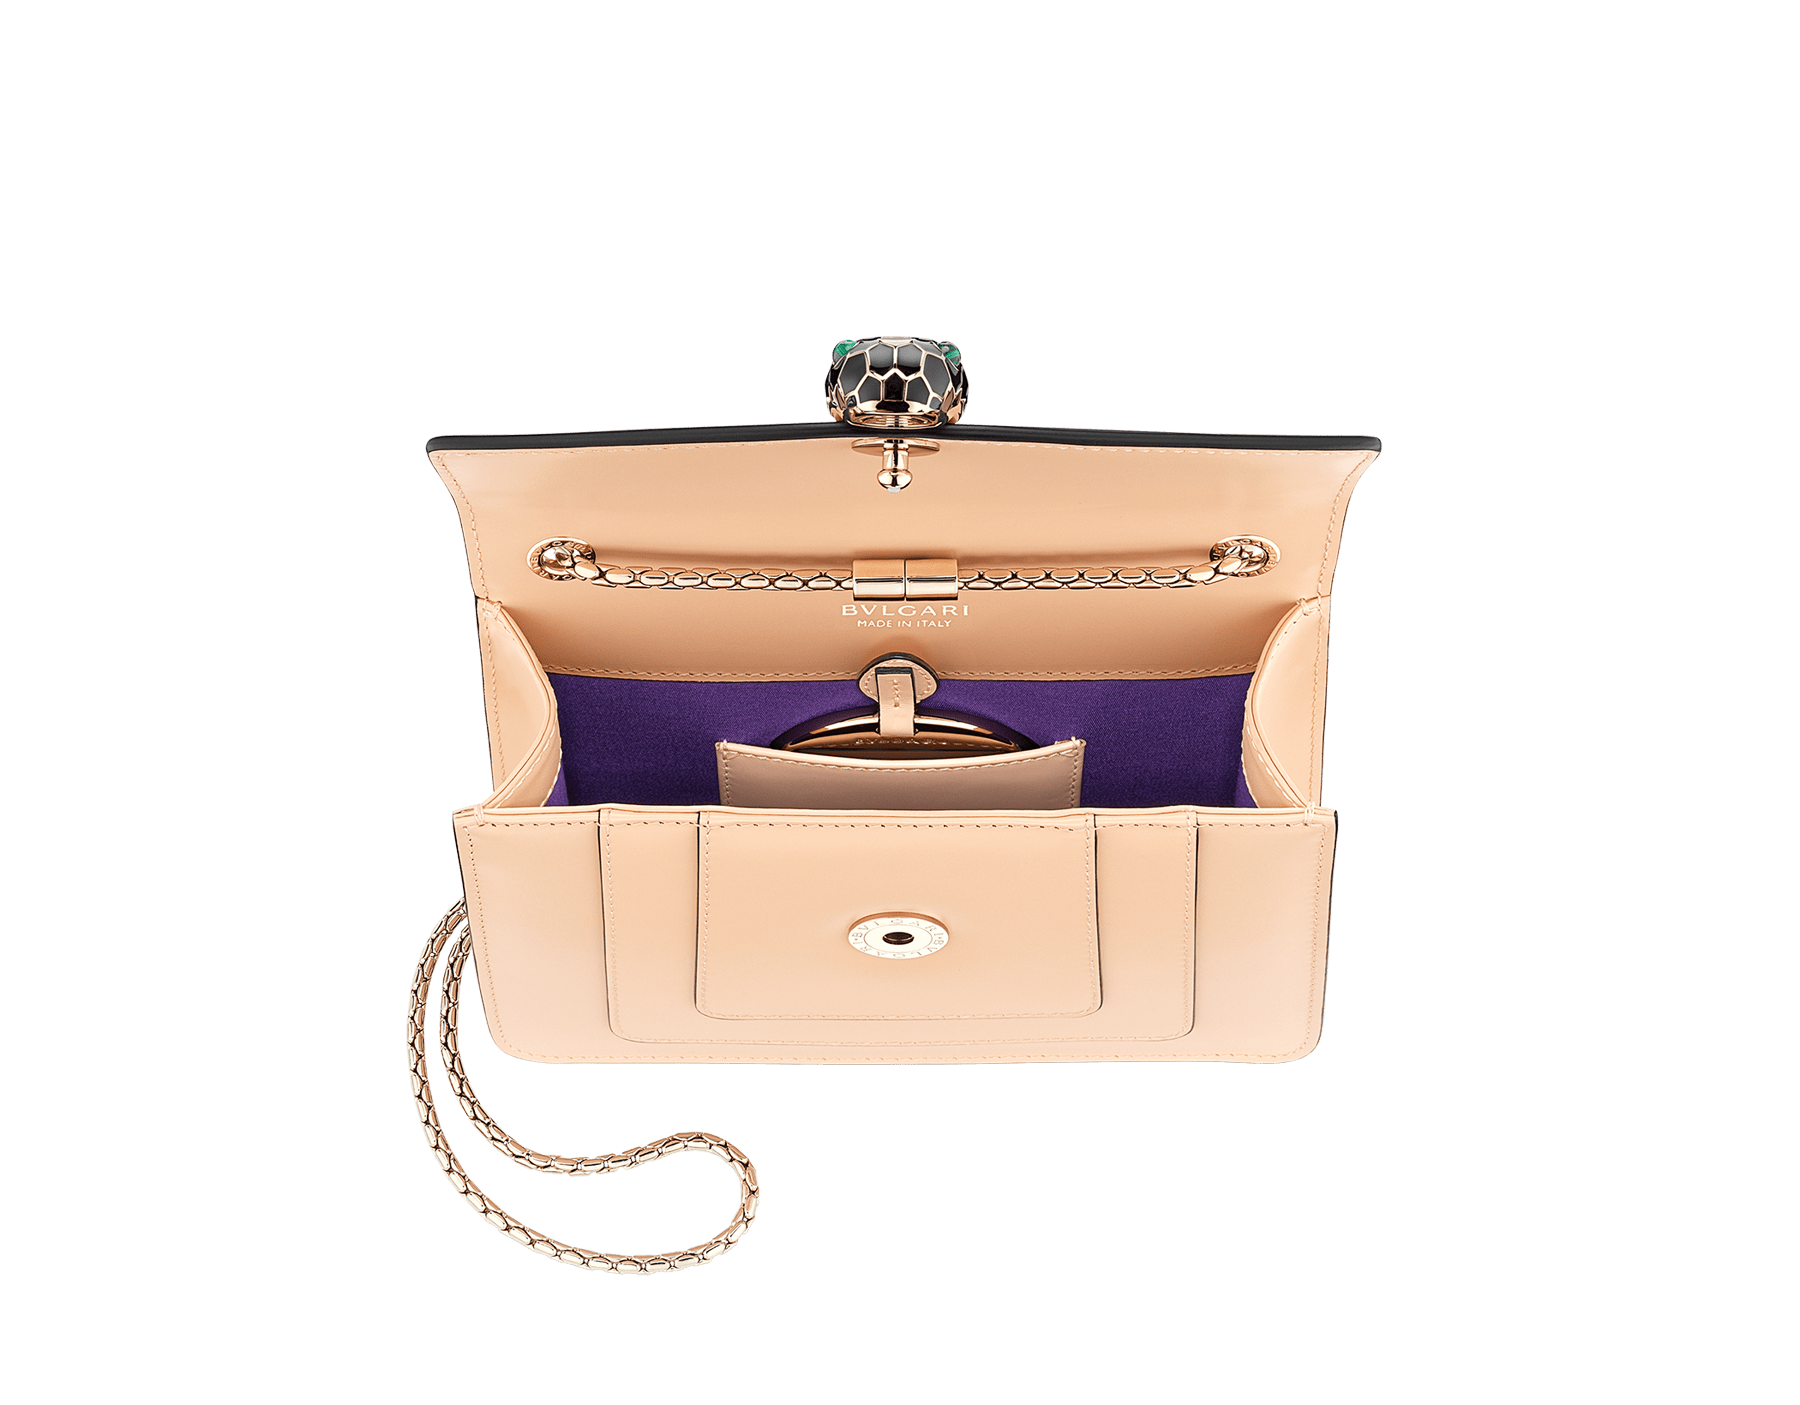 """Serpenti Forever"" crossbody bag in peach calf leather with Pink Spinel fuchsia gros grain internal lining. Iconic snakehead closure in light gold plated brass enriched with black and white agate enamel and green malachite eyes. 422-CLc image 4"